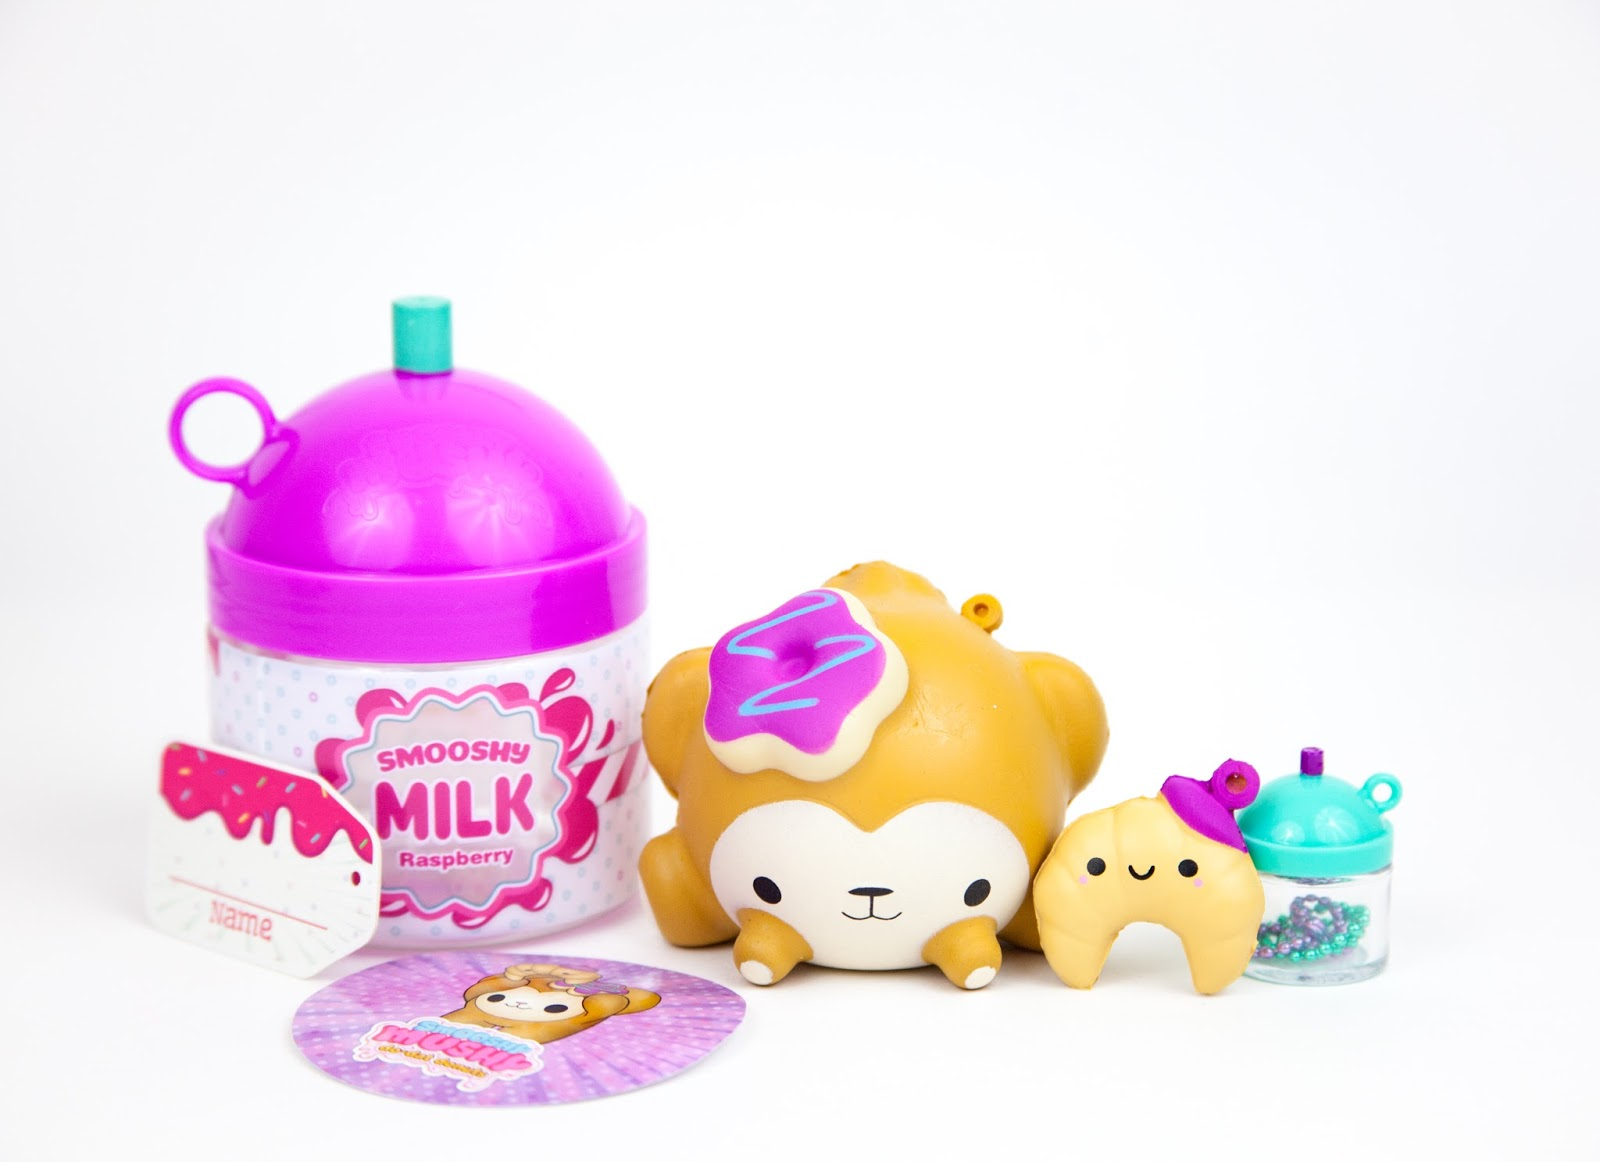 Smooshy Mushy Creamery : Tubey Toys